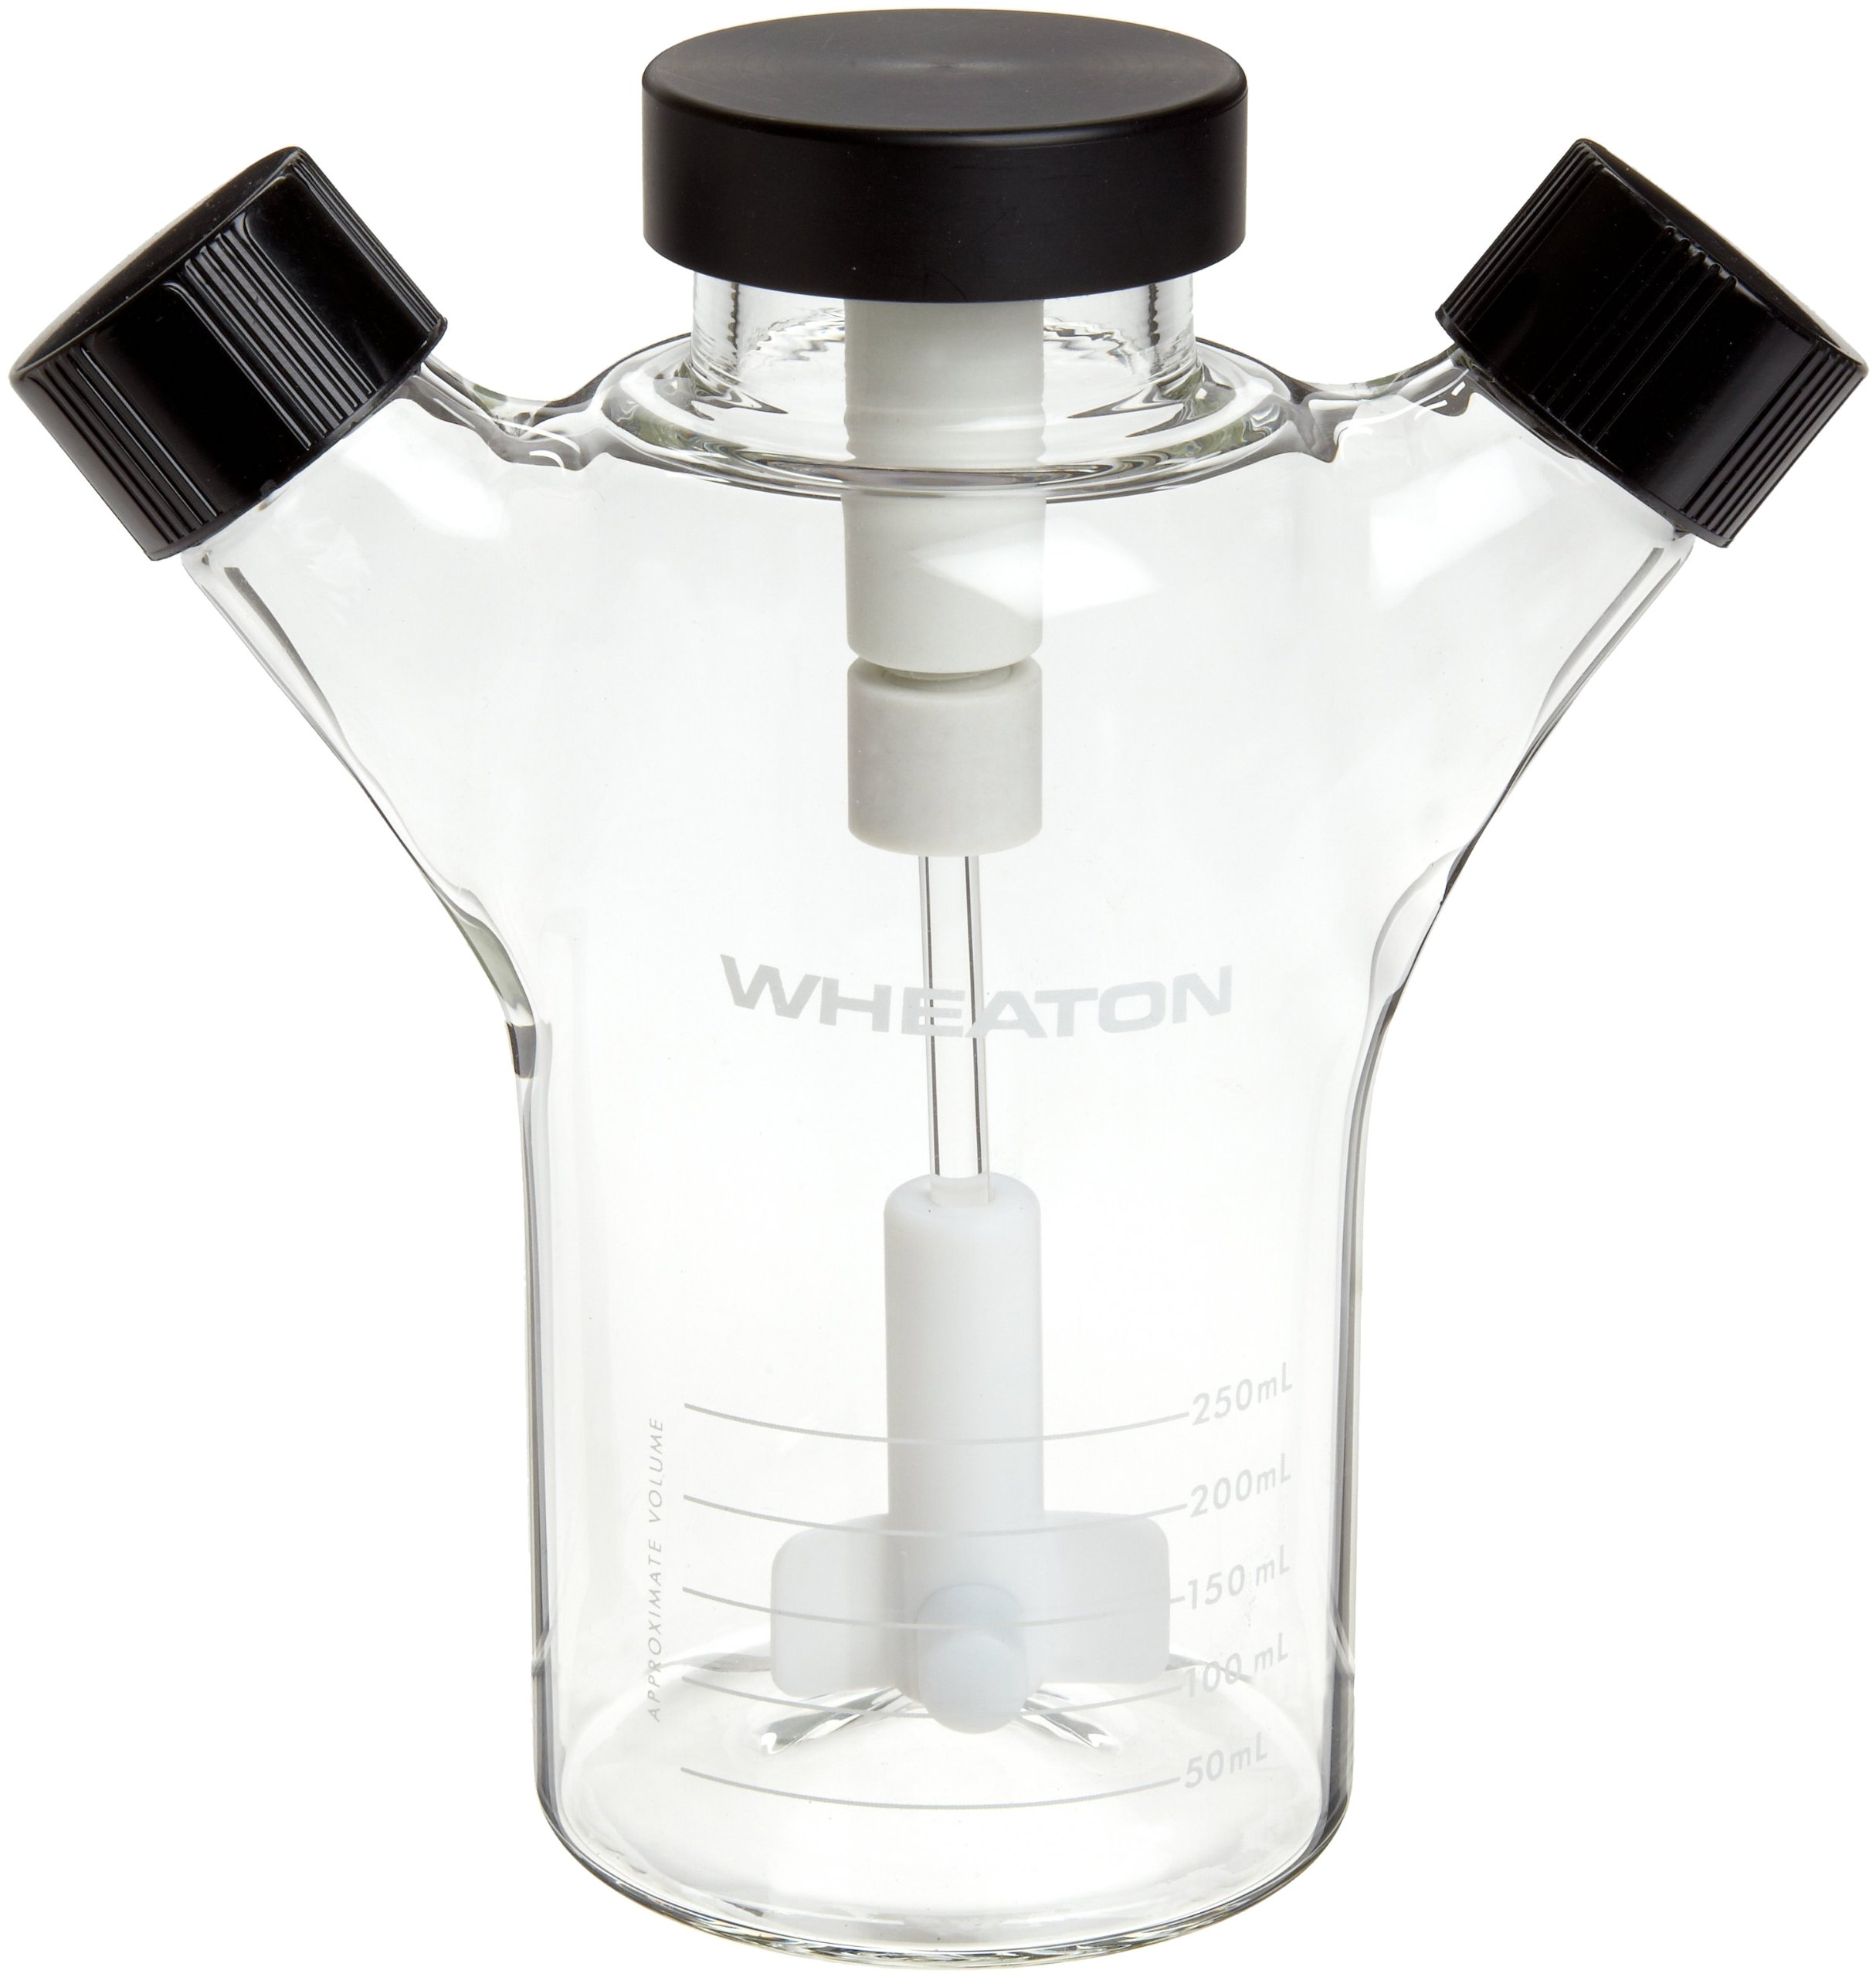 Wheaton 356879 Glass 250mL Celstir Spinner Flask, with 33-430 Screw Caps, 85mm x 175mm